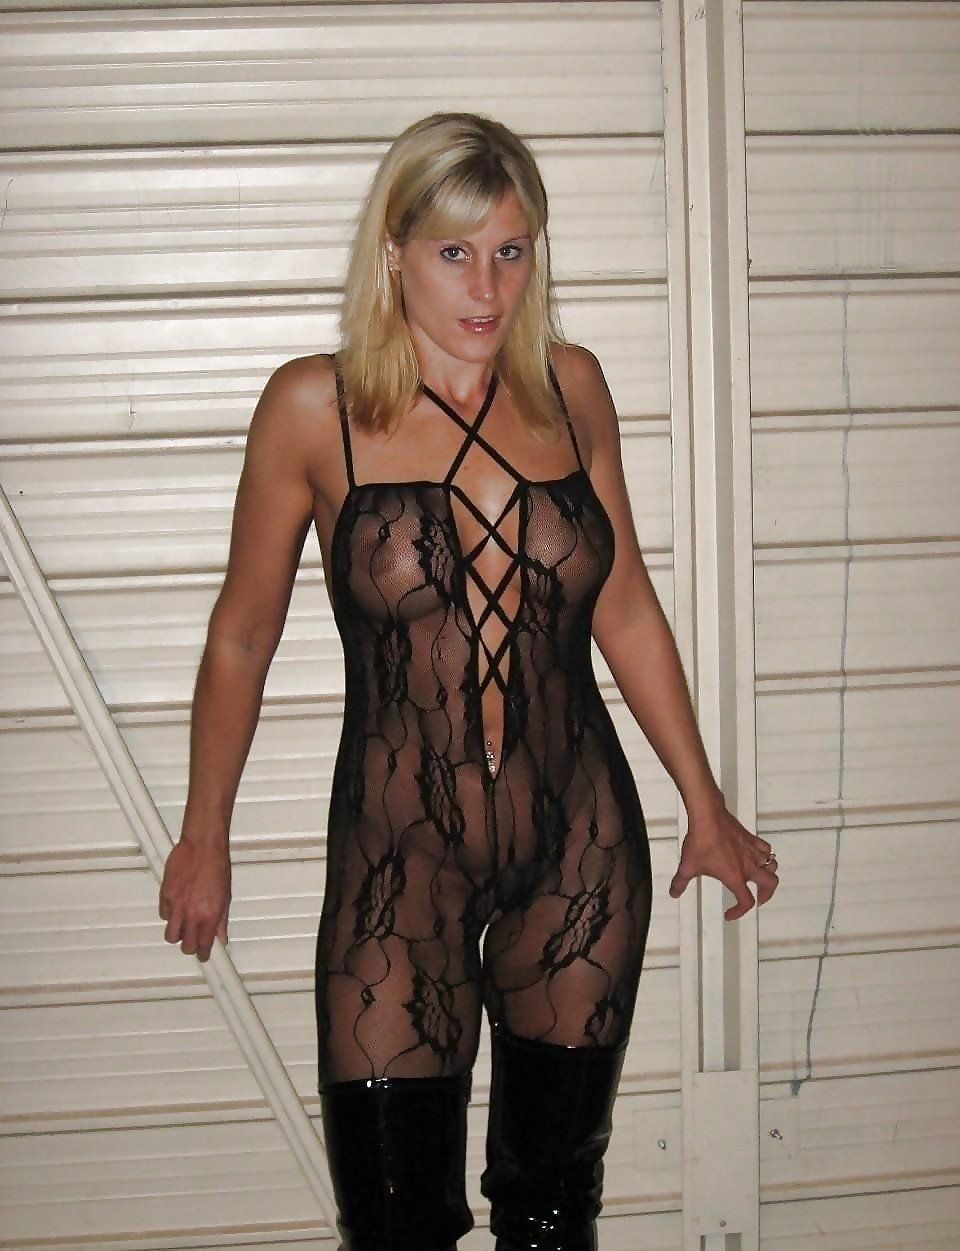 search chubby mature amateur mature real porn